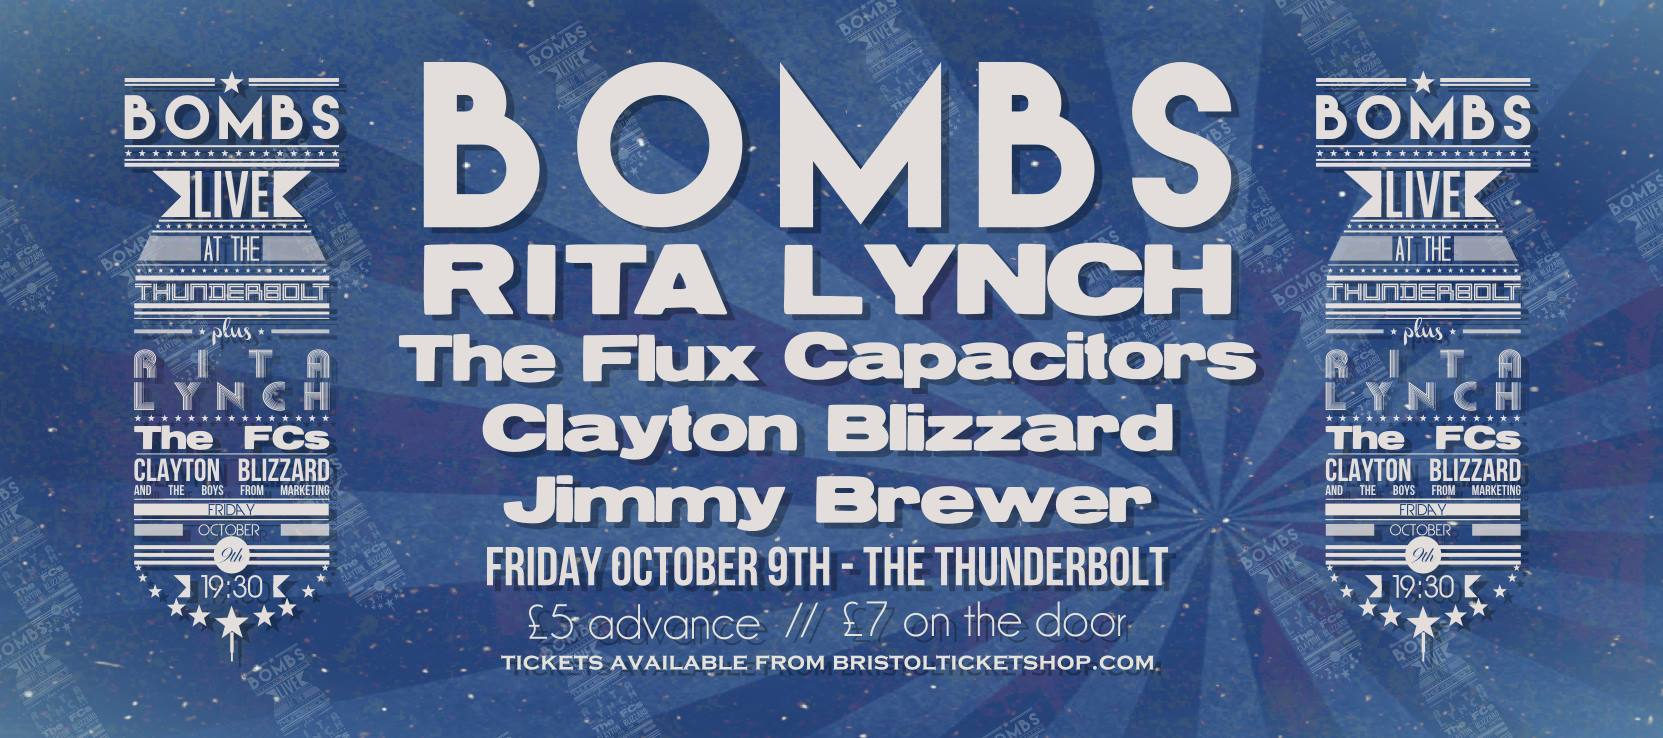 BOMBS, Rita Lynch, The Flux Capacitors, Clayton Blizzard & The Boys From Marketing, & Jimmy Brewer   The Thunderbolt